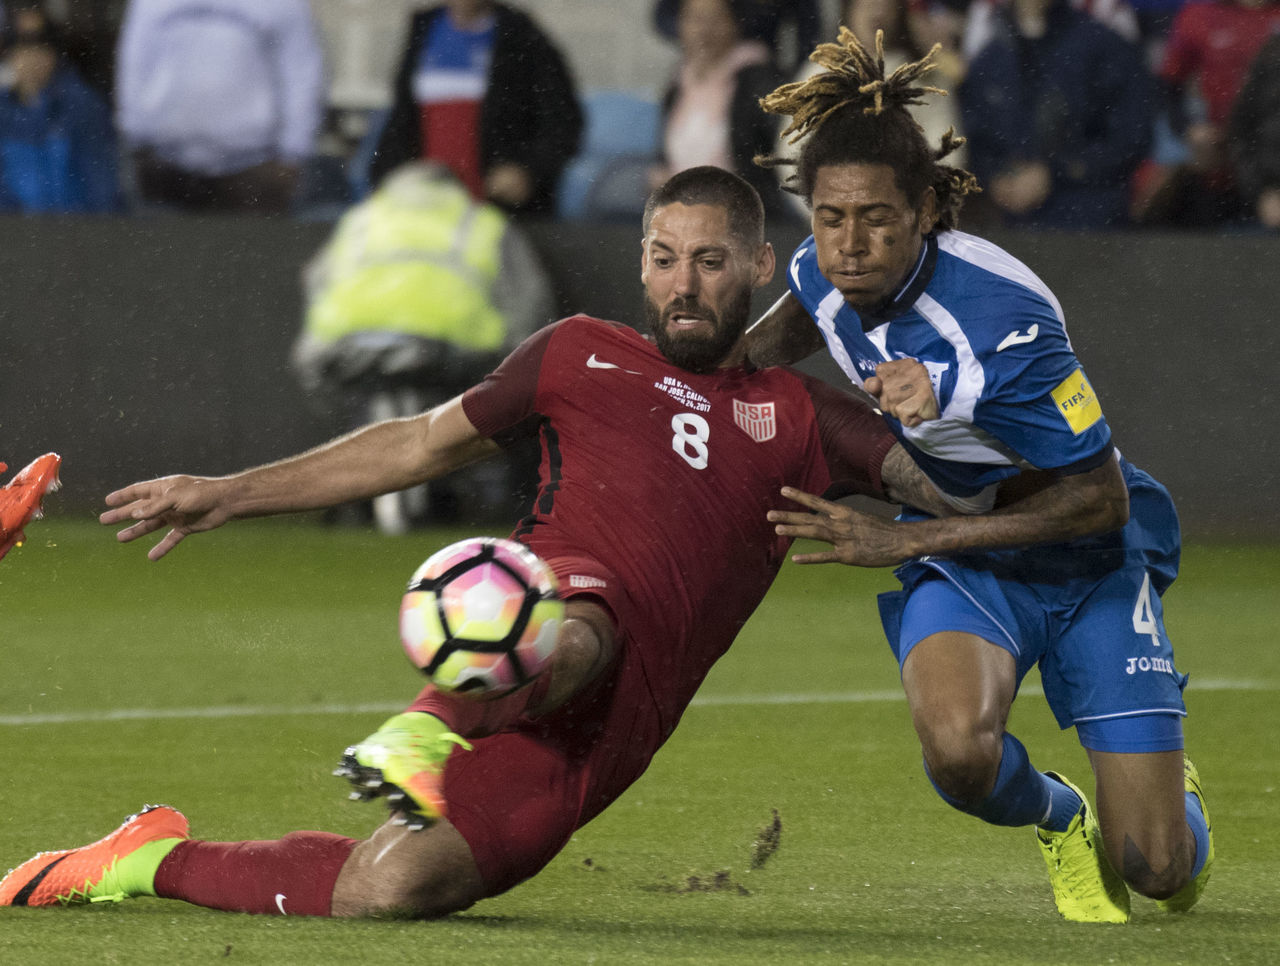 Cropped 2017 03 25t035354z 76591268 nocid rtrmadp 3 soccer men s world cup soccer qualifier honduras at usa